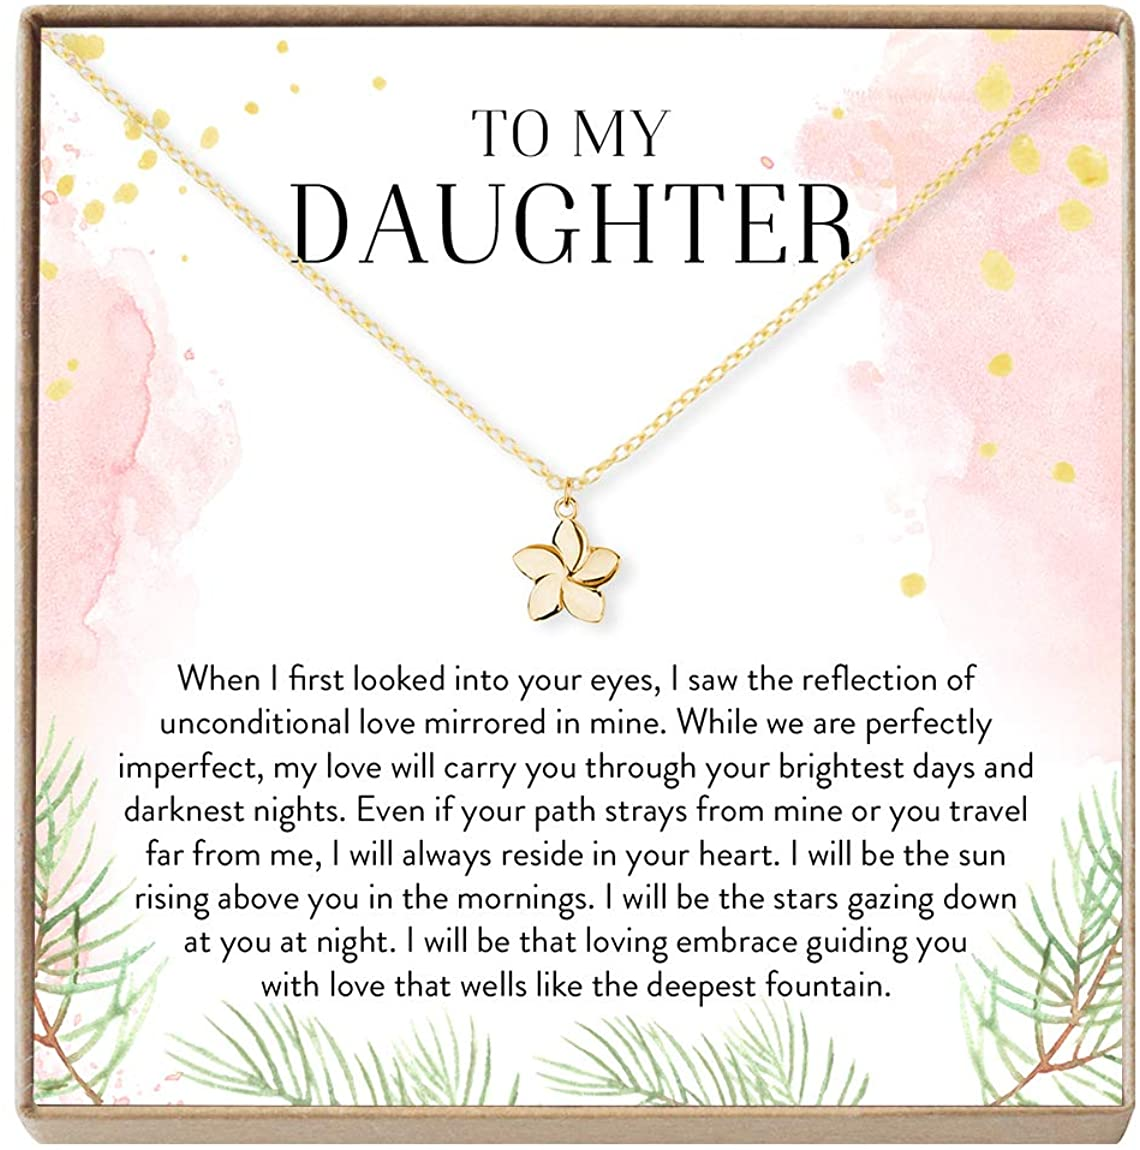 Daughter Necklace - Heartfelt Card & Jewelry Gift for Birthday, Holidays & More